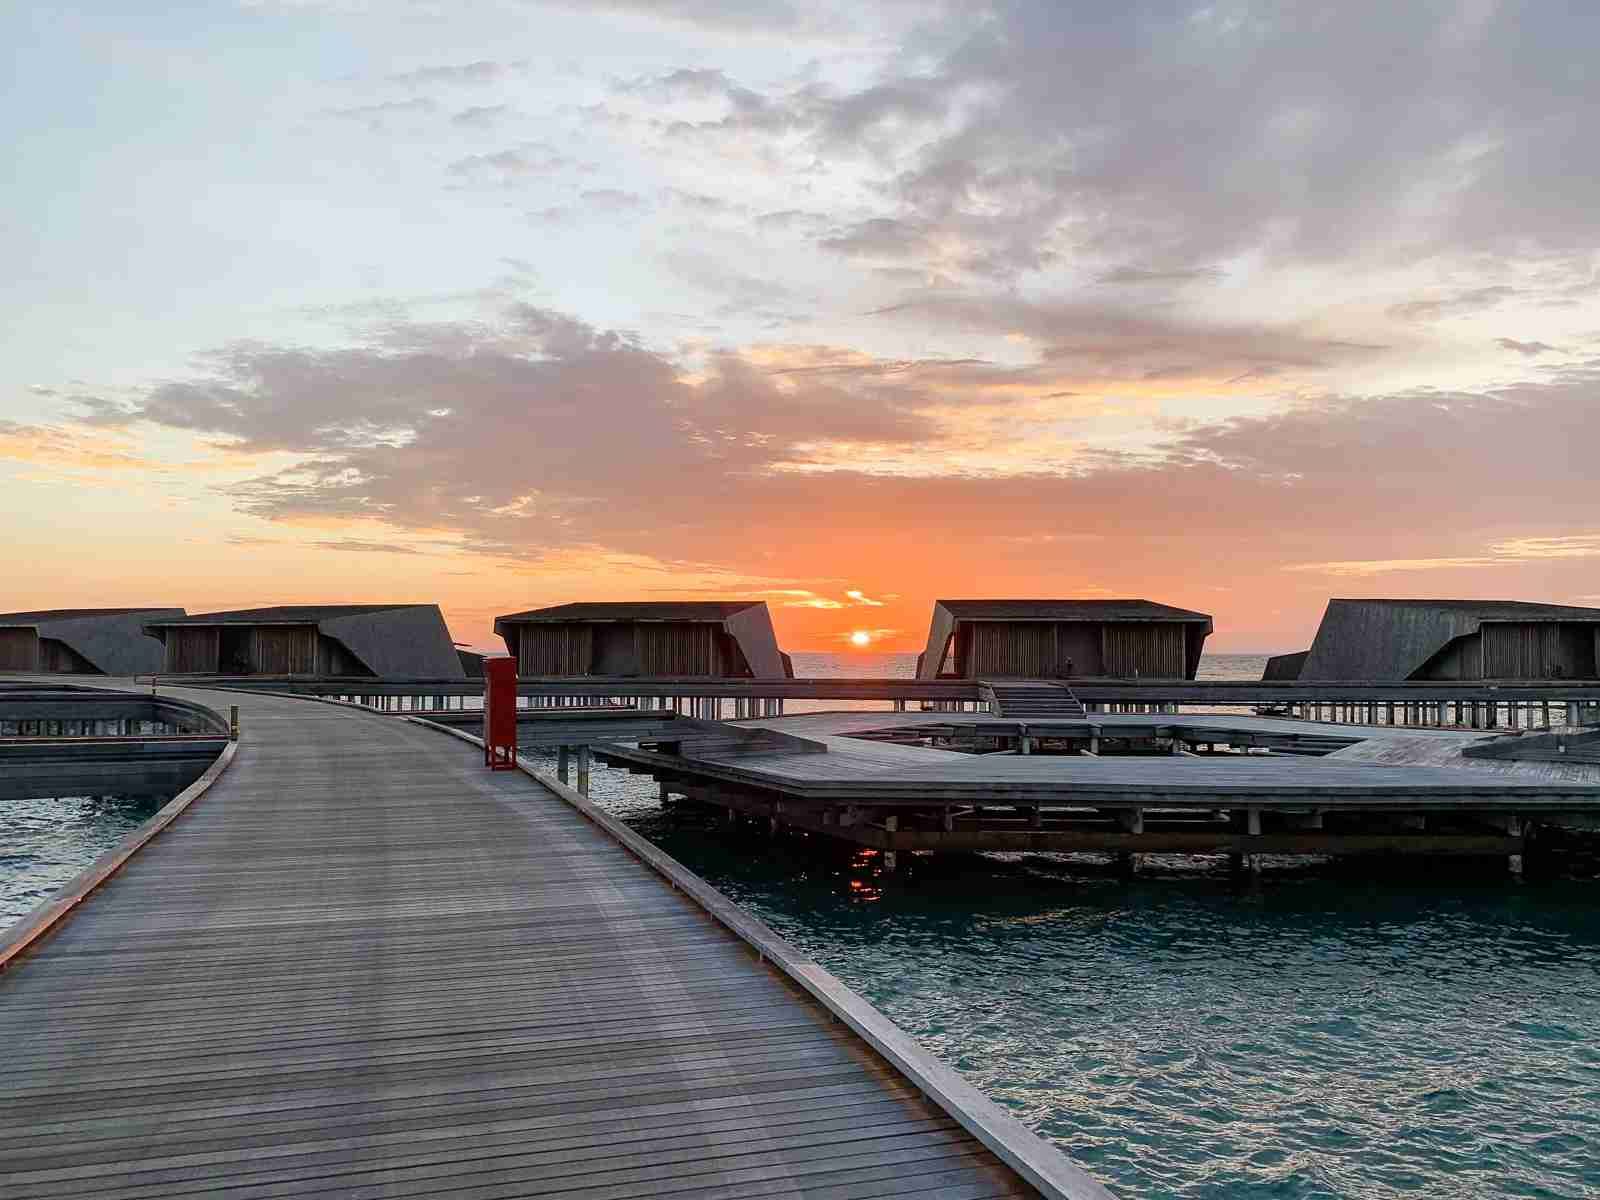 You can use this bonus to score a stay at the St. Regis Maldives, where views like this are a regular occurence. (Photo by Ethan Steinberg/The Points Guy)